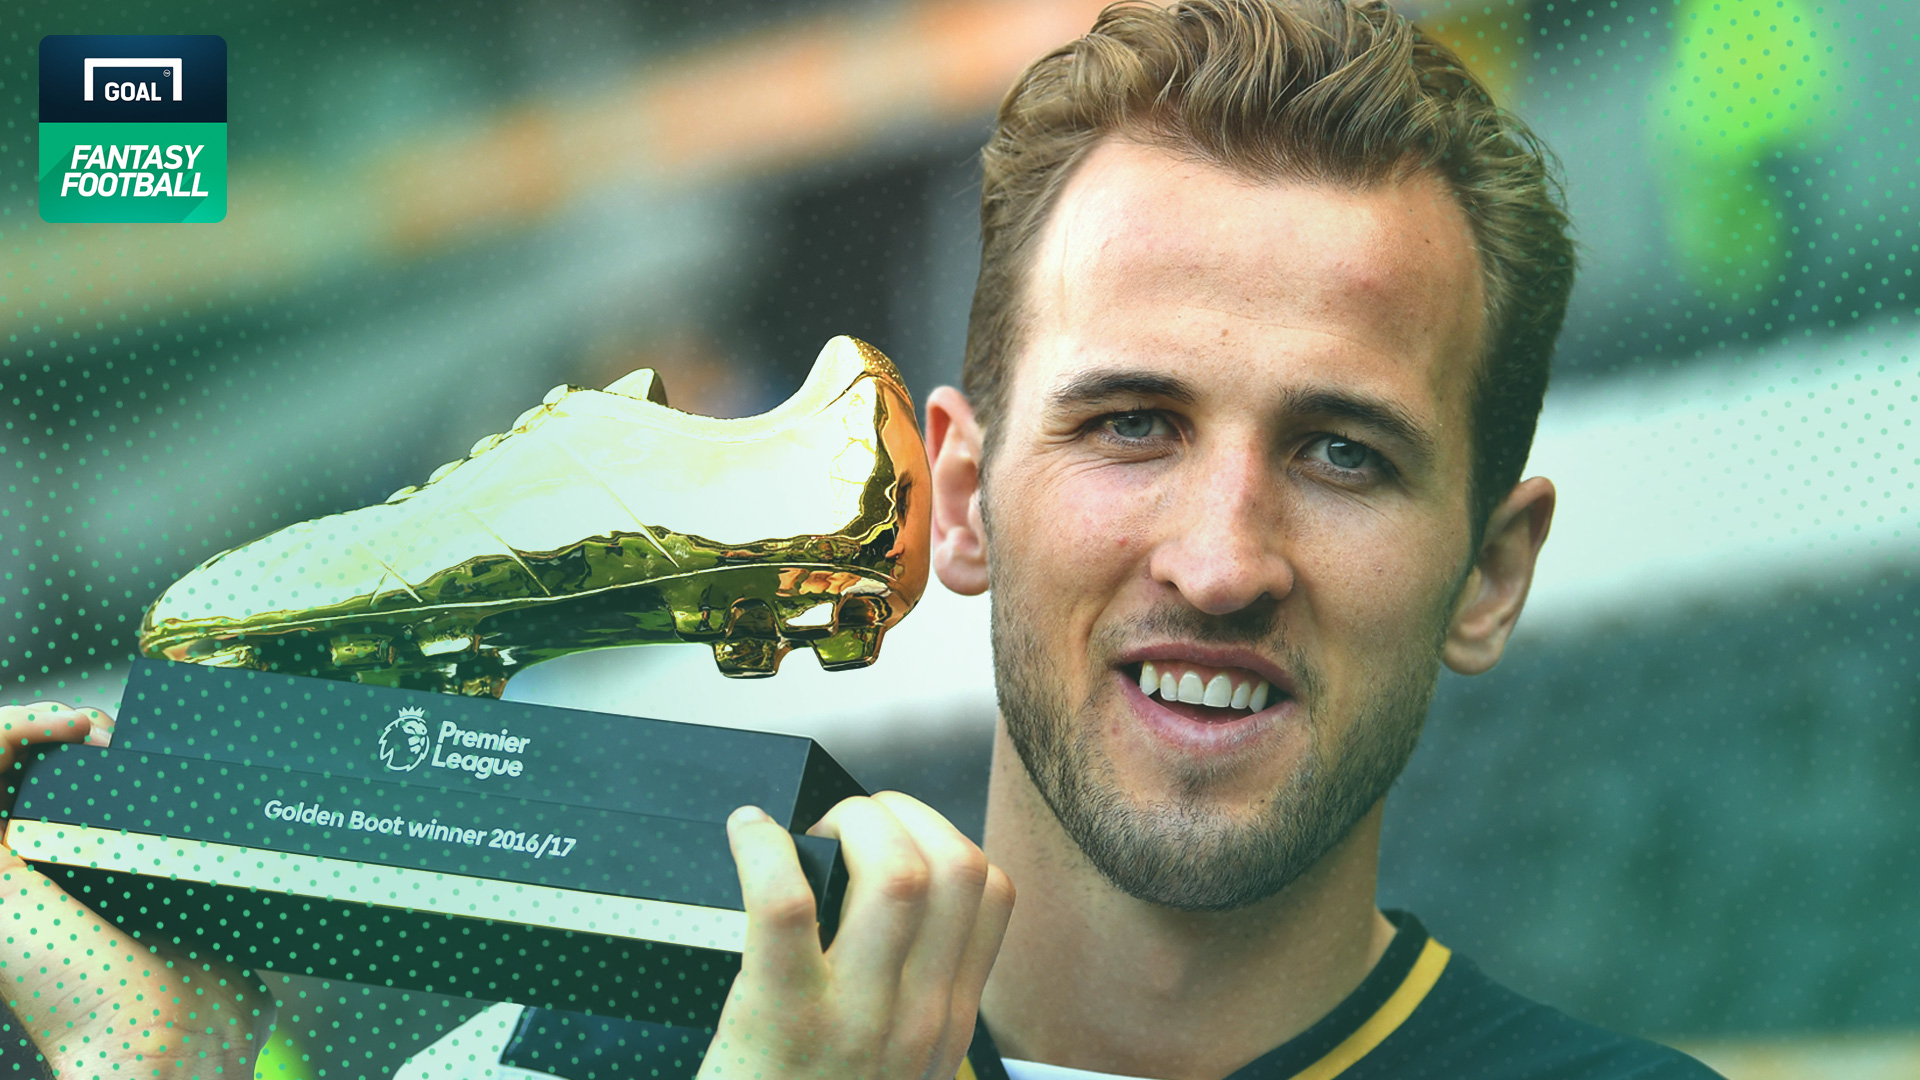 Goal-Fantasy-Football-Harry-Kane